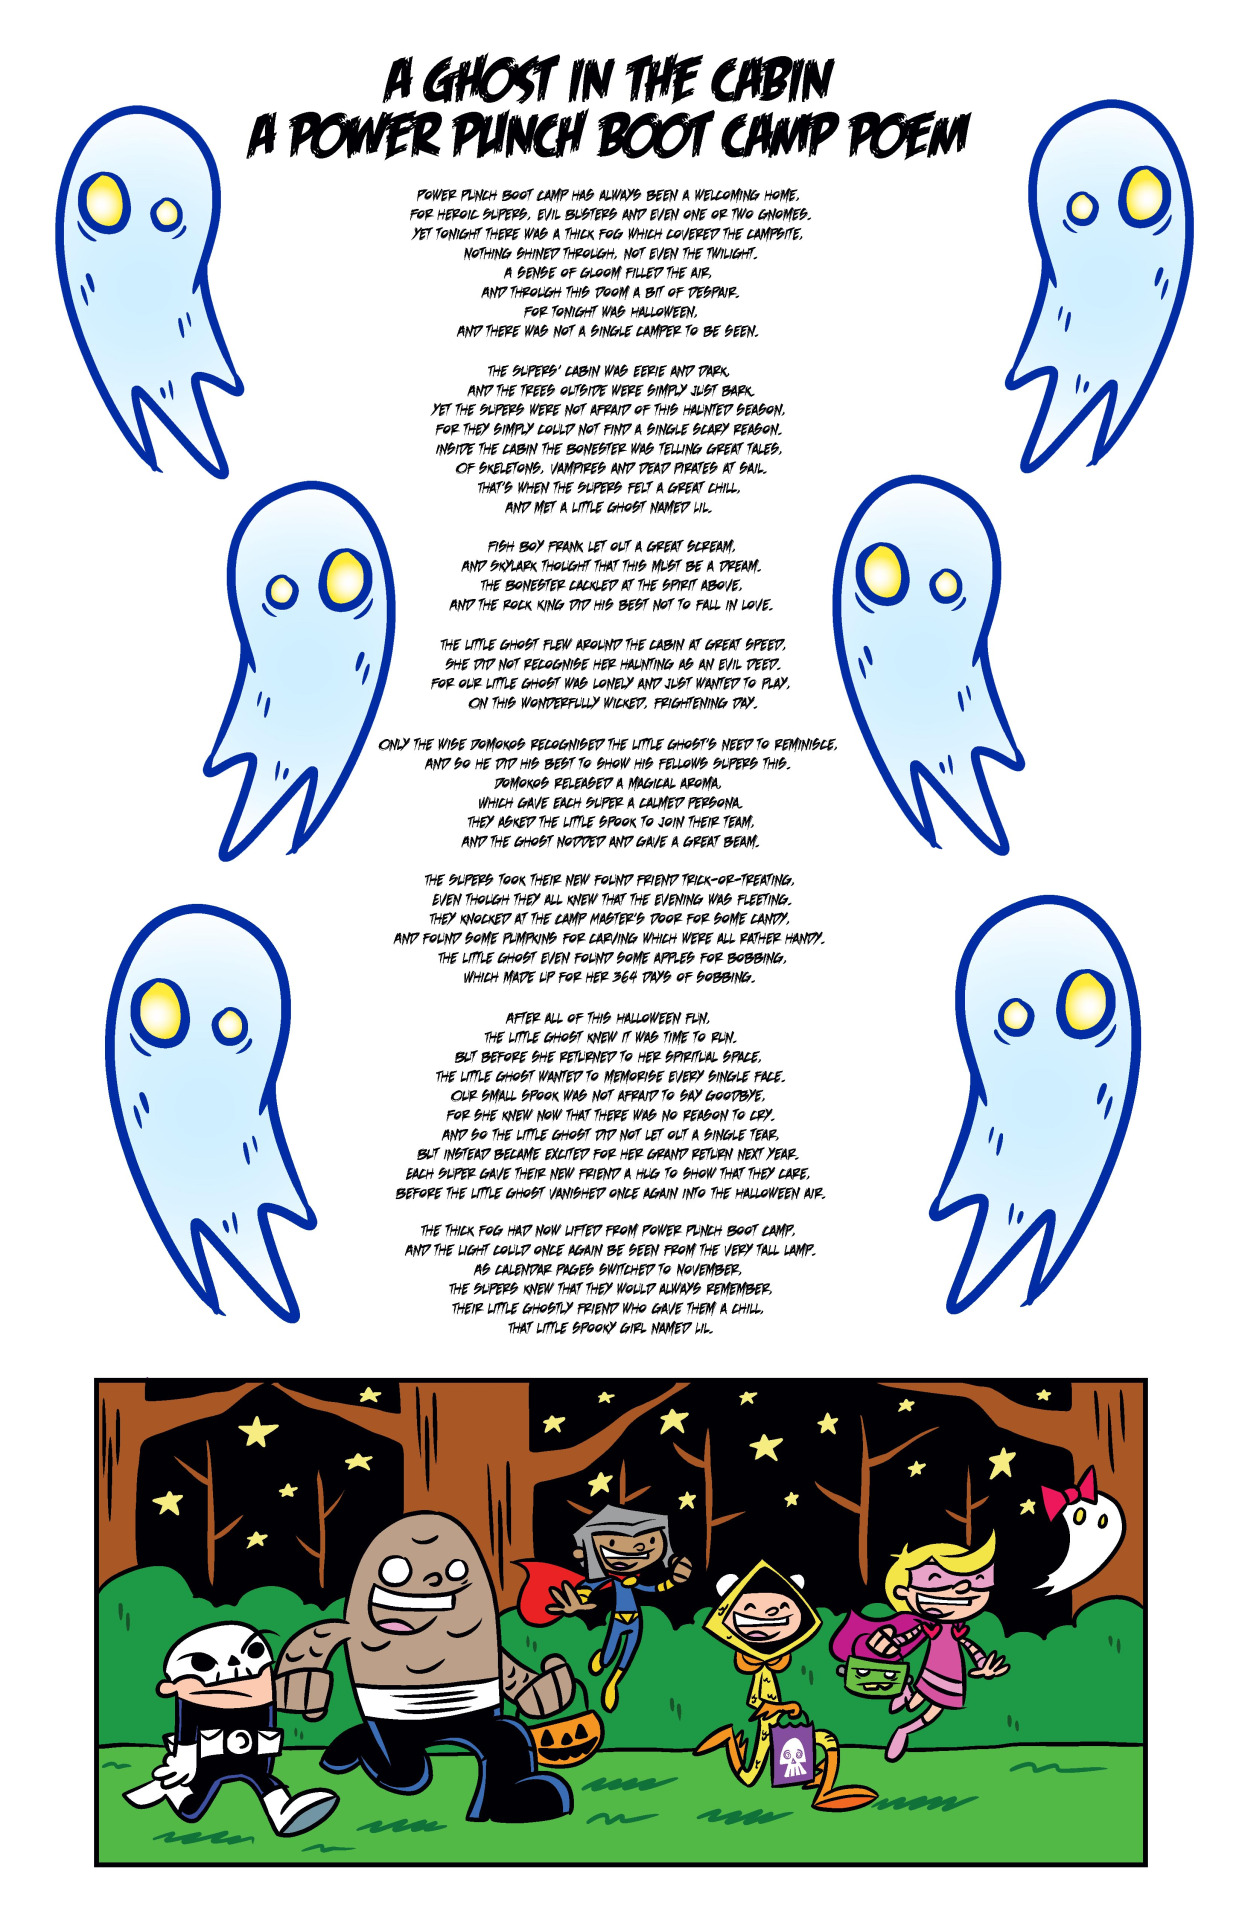 A Ghost in the Cabin! - A Halloween Poem!